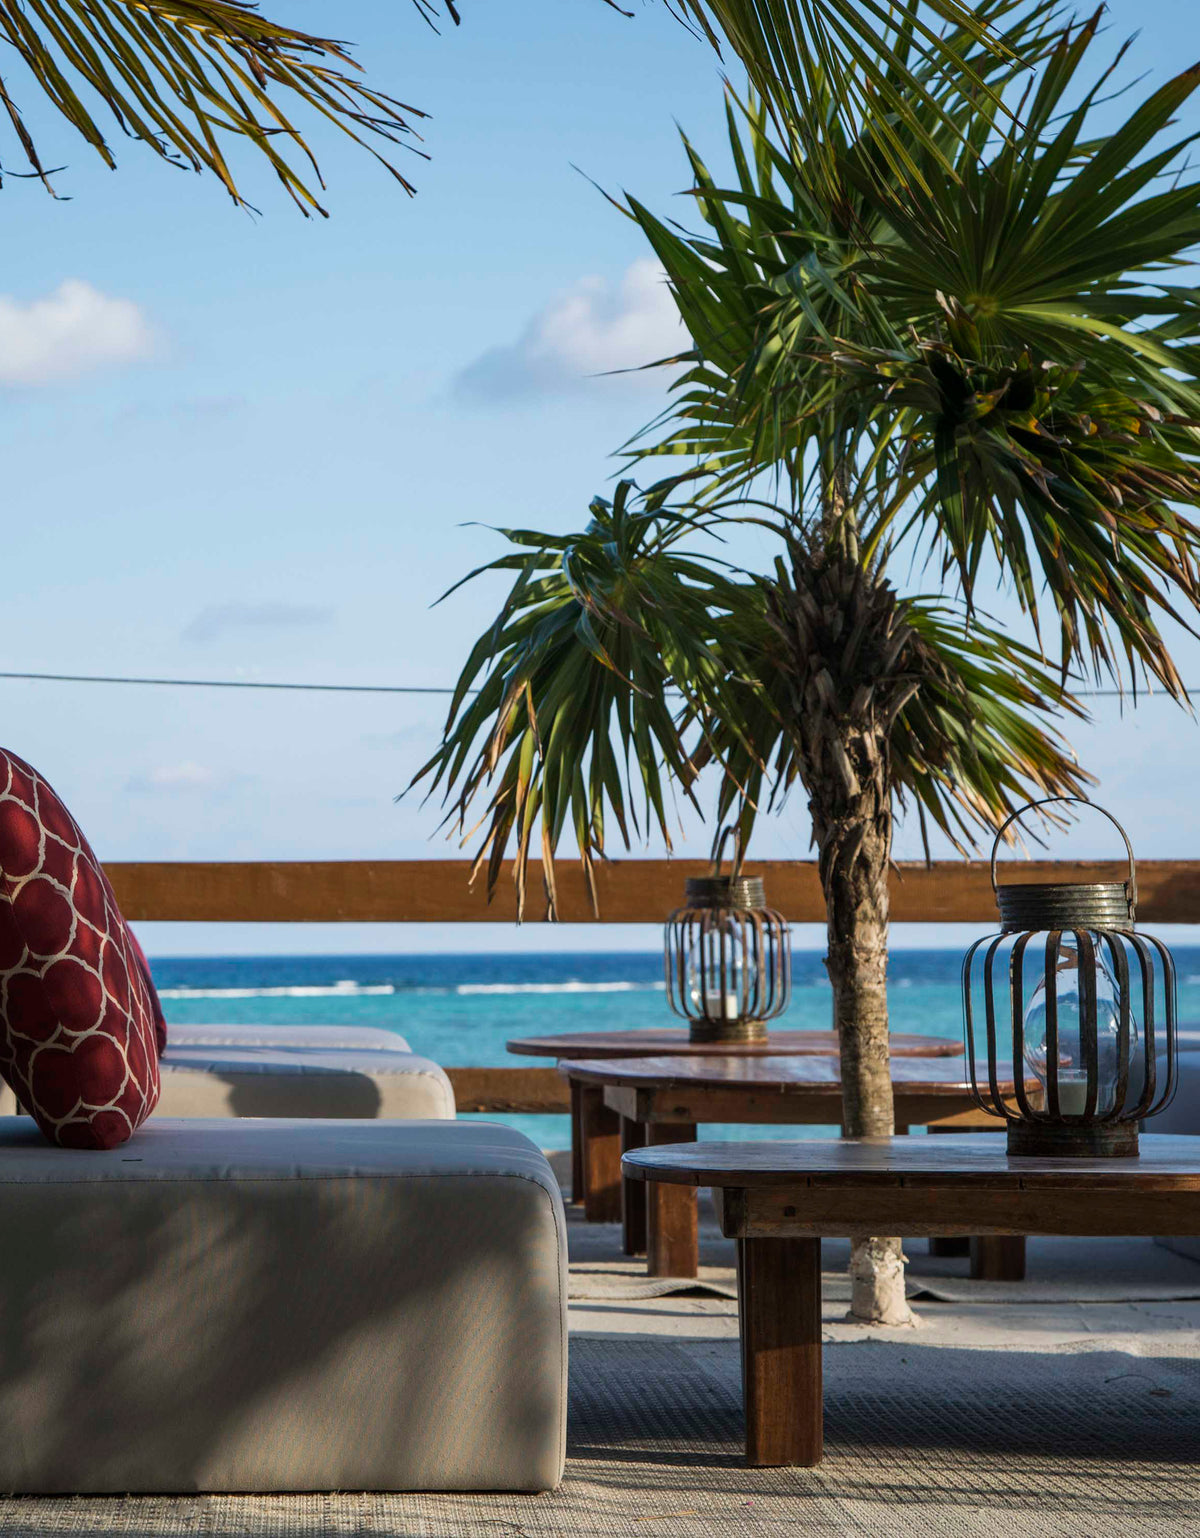 Jashita Hotel, Tulum - patio with sofas, wicker lanterns, coffee tables, small palm trees, and an ocean view